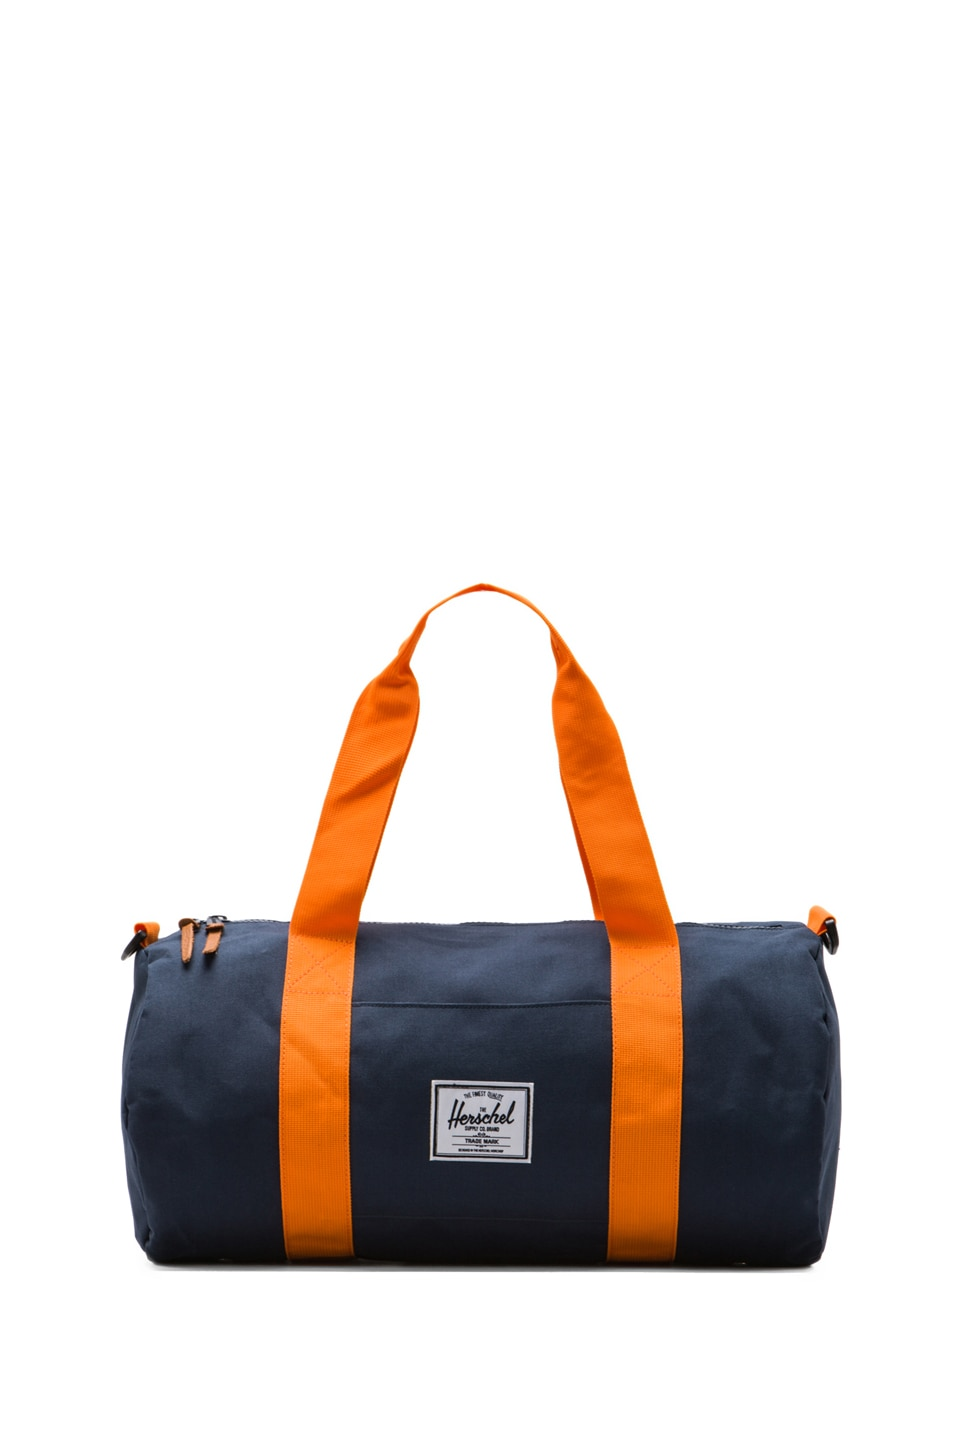 Herschel Supply Co. Sutton Mid Duffle in Navy/Mandarin